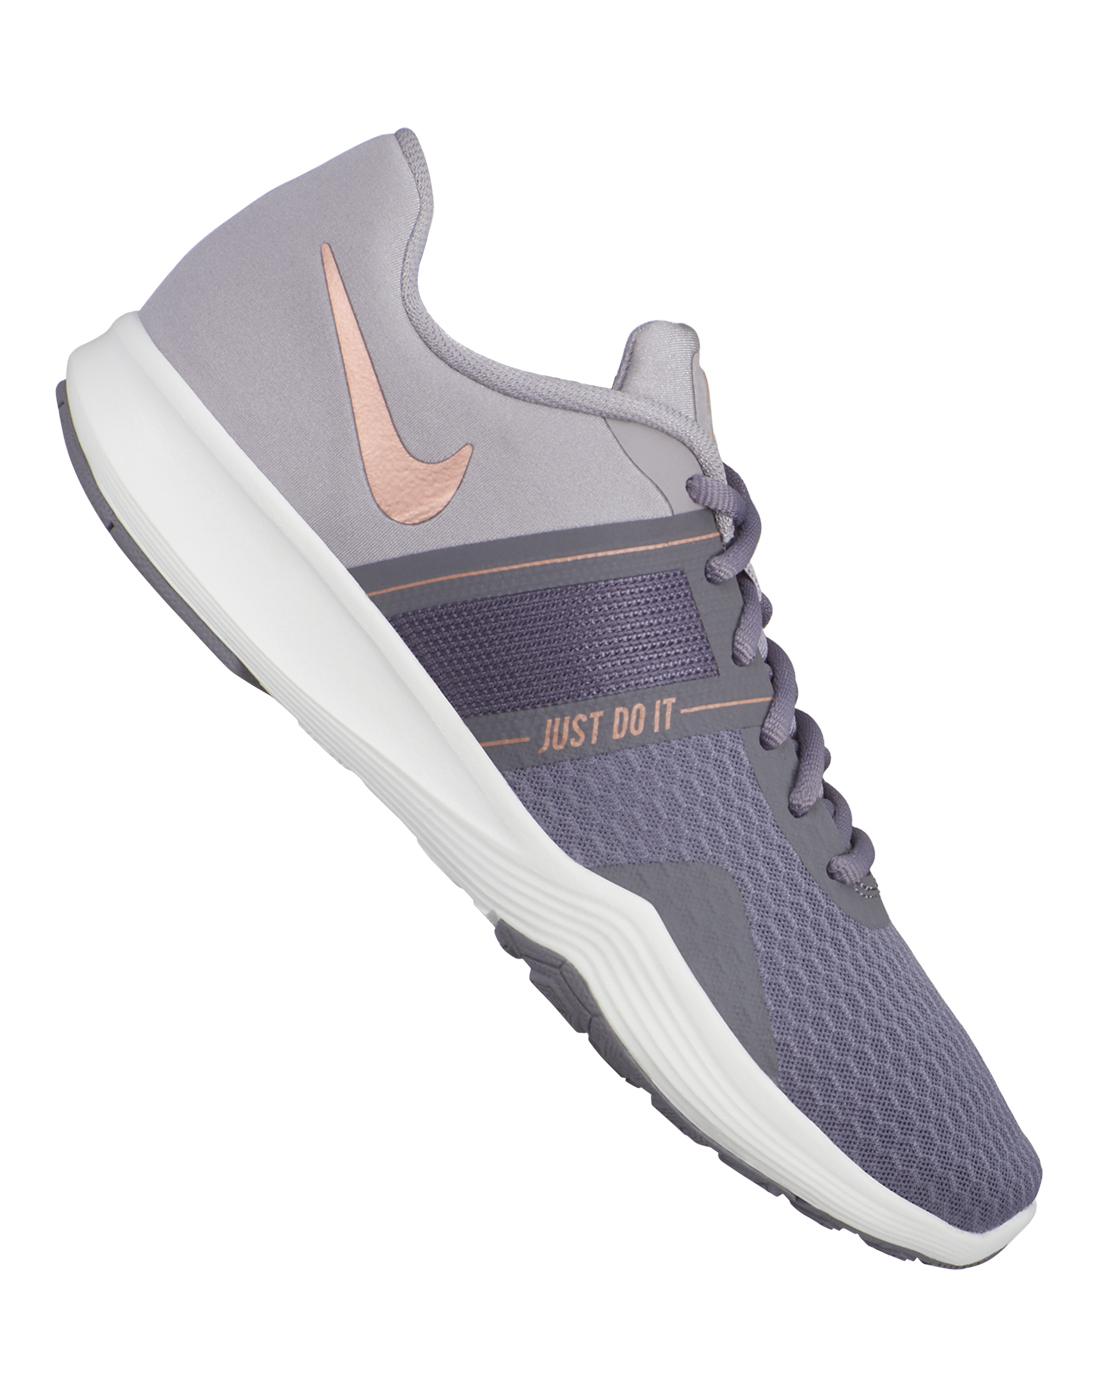 0c1e9e534abb0 Women s Grey   Purple Nike City Trainer 2